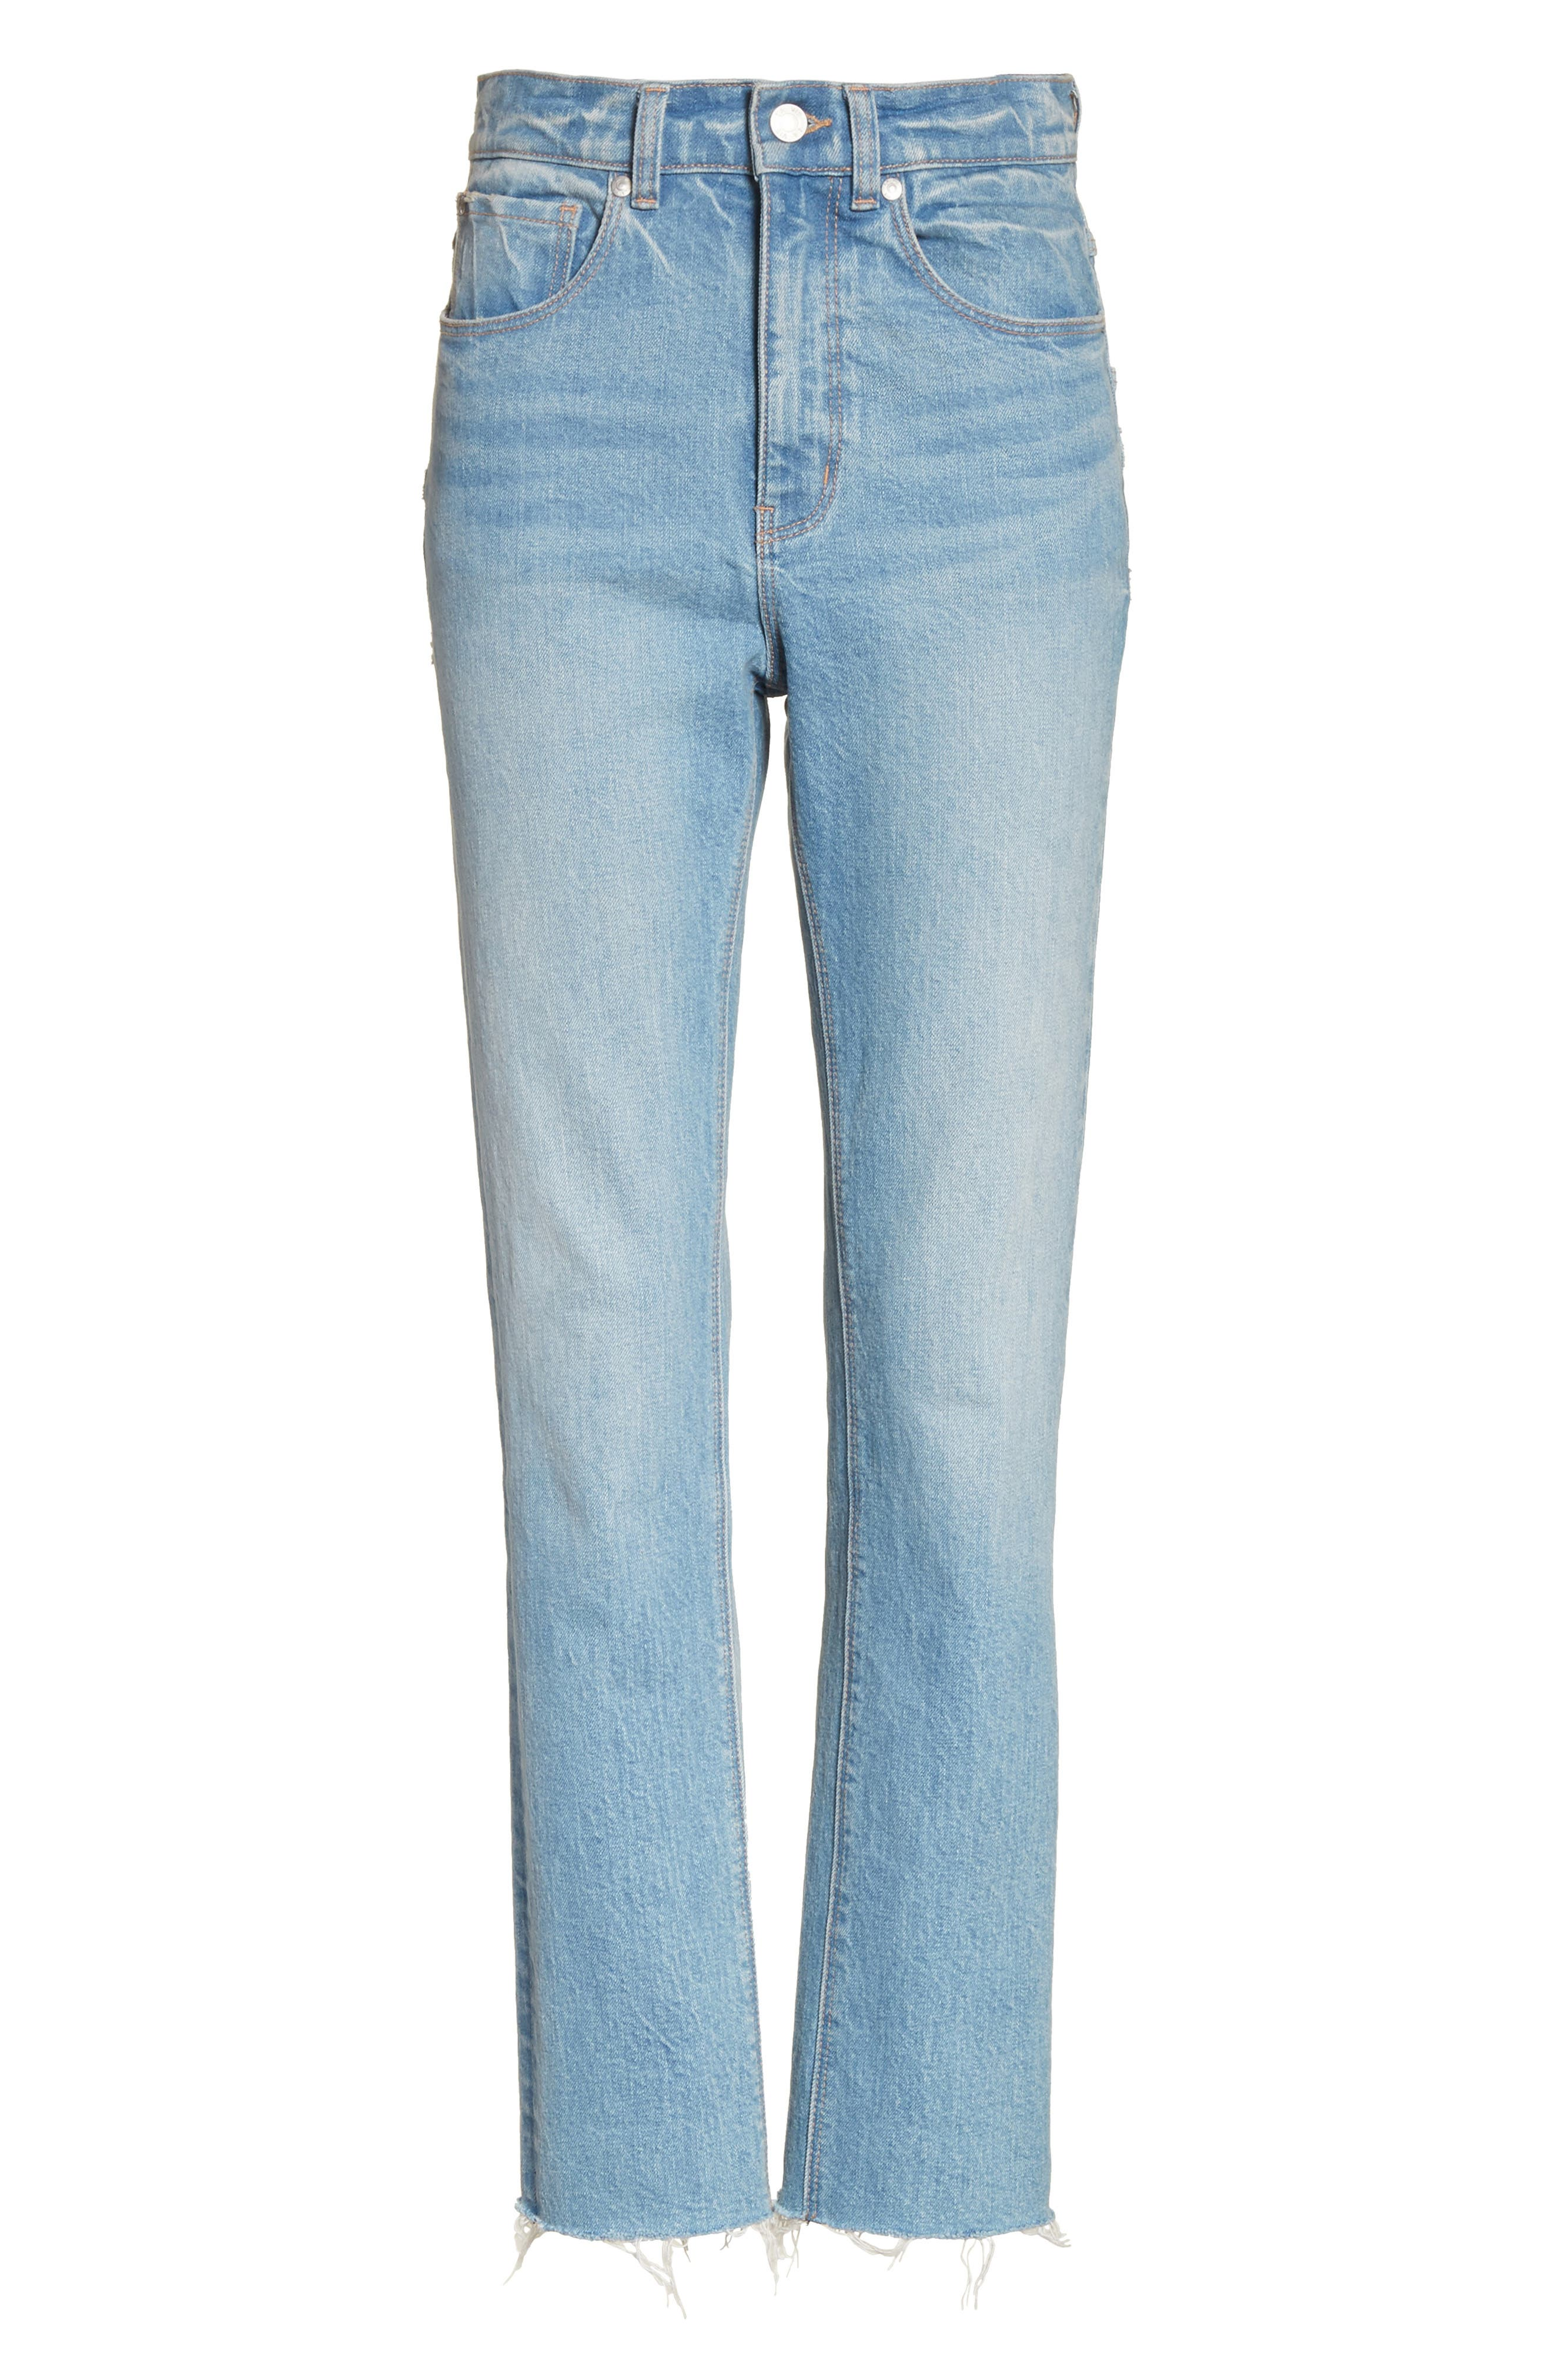 Ines High Waist Ankle Jeans,                             Alternate thumbnail 6, color,                             469